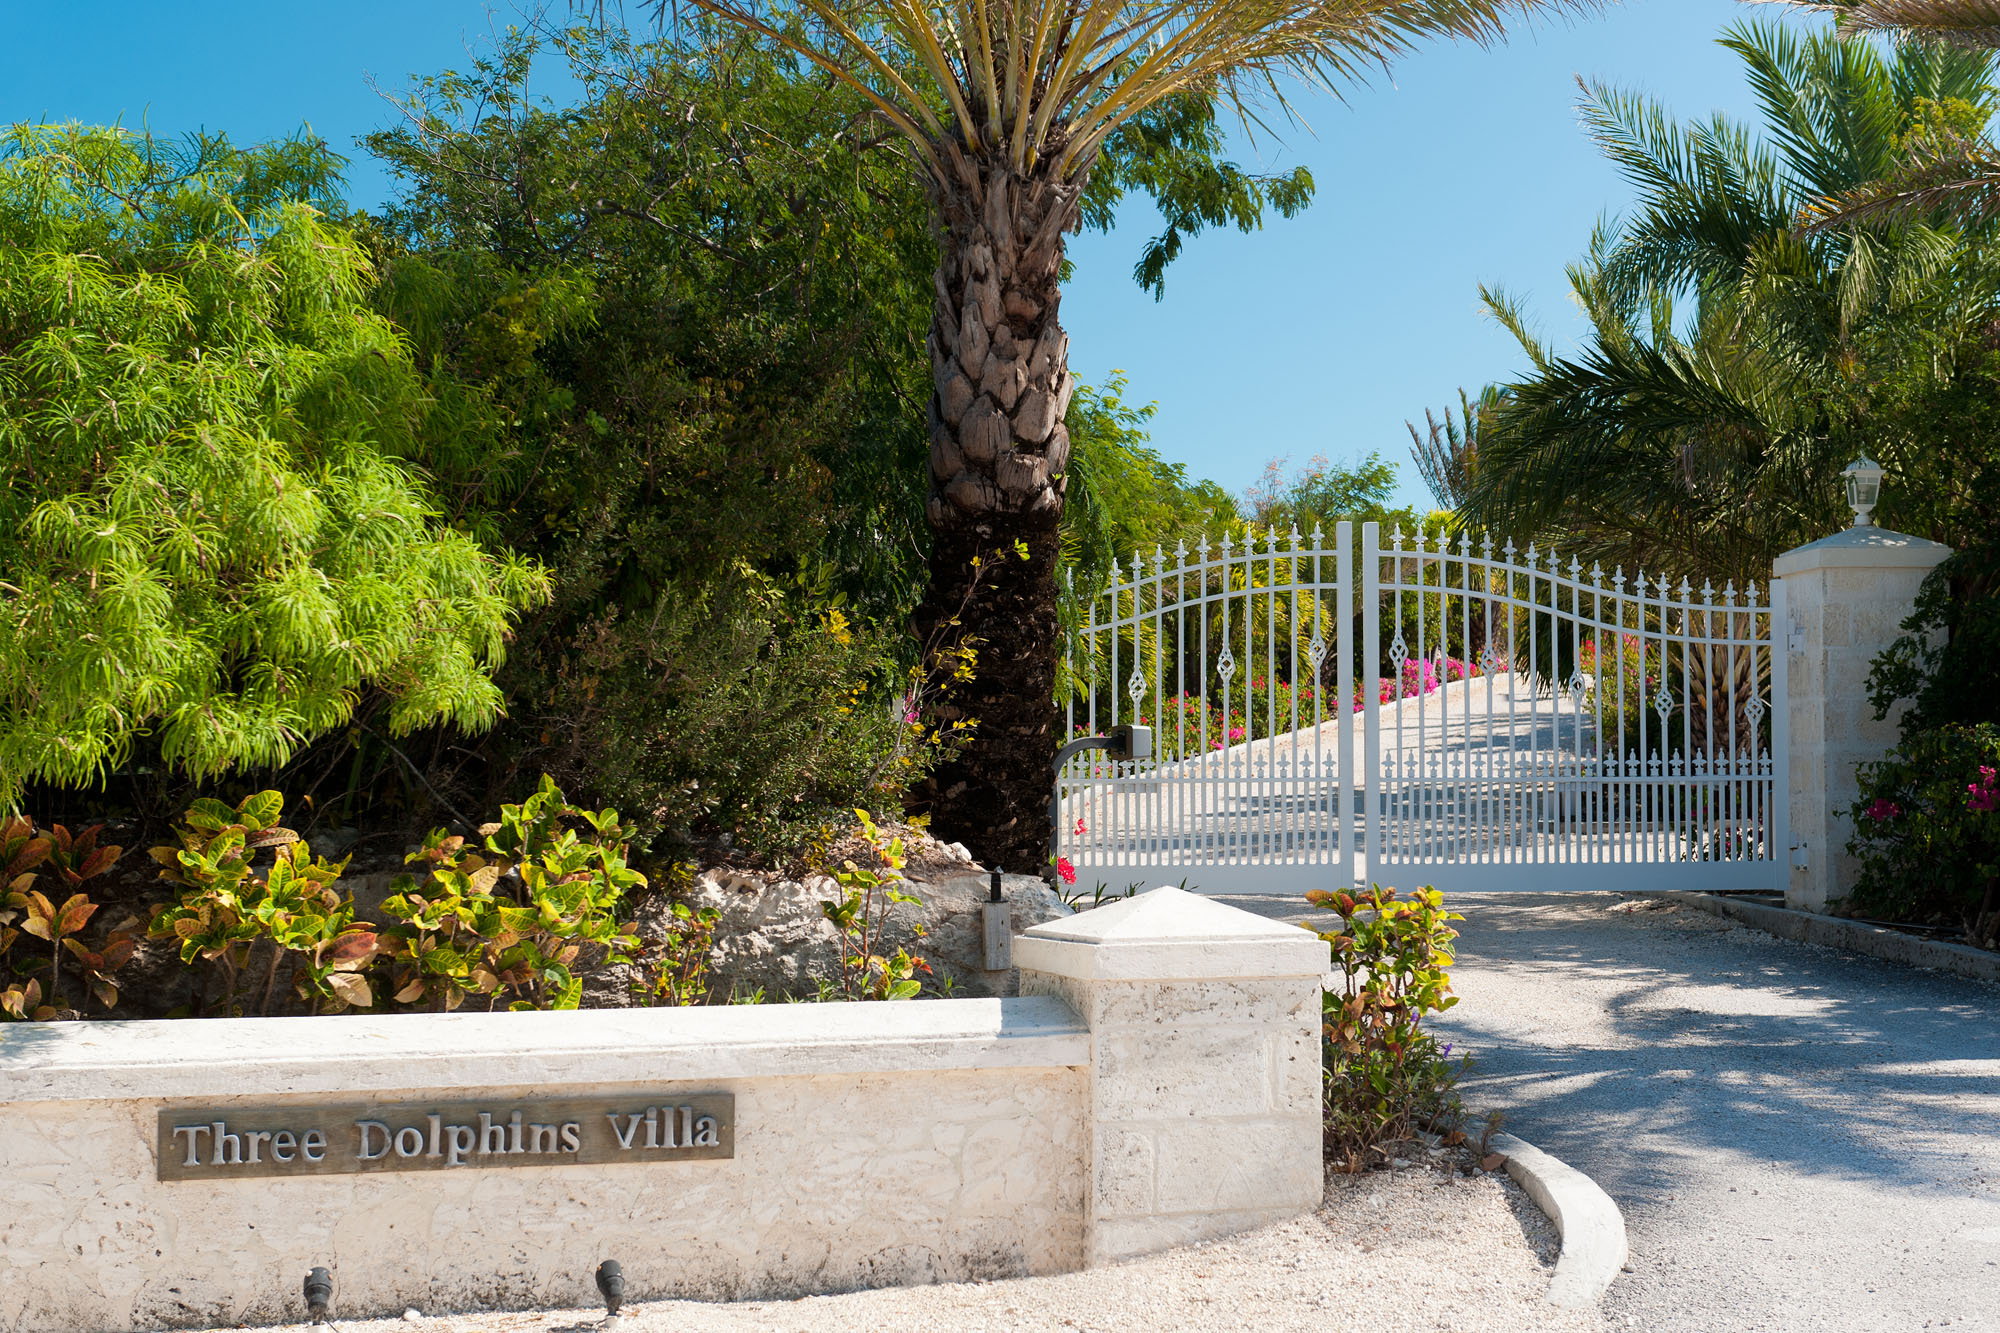 The beautifully landscaped, tropical garden at Three Dolphins Villa, Providenciales (Provo), Turks and Caicos Islands